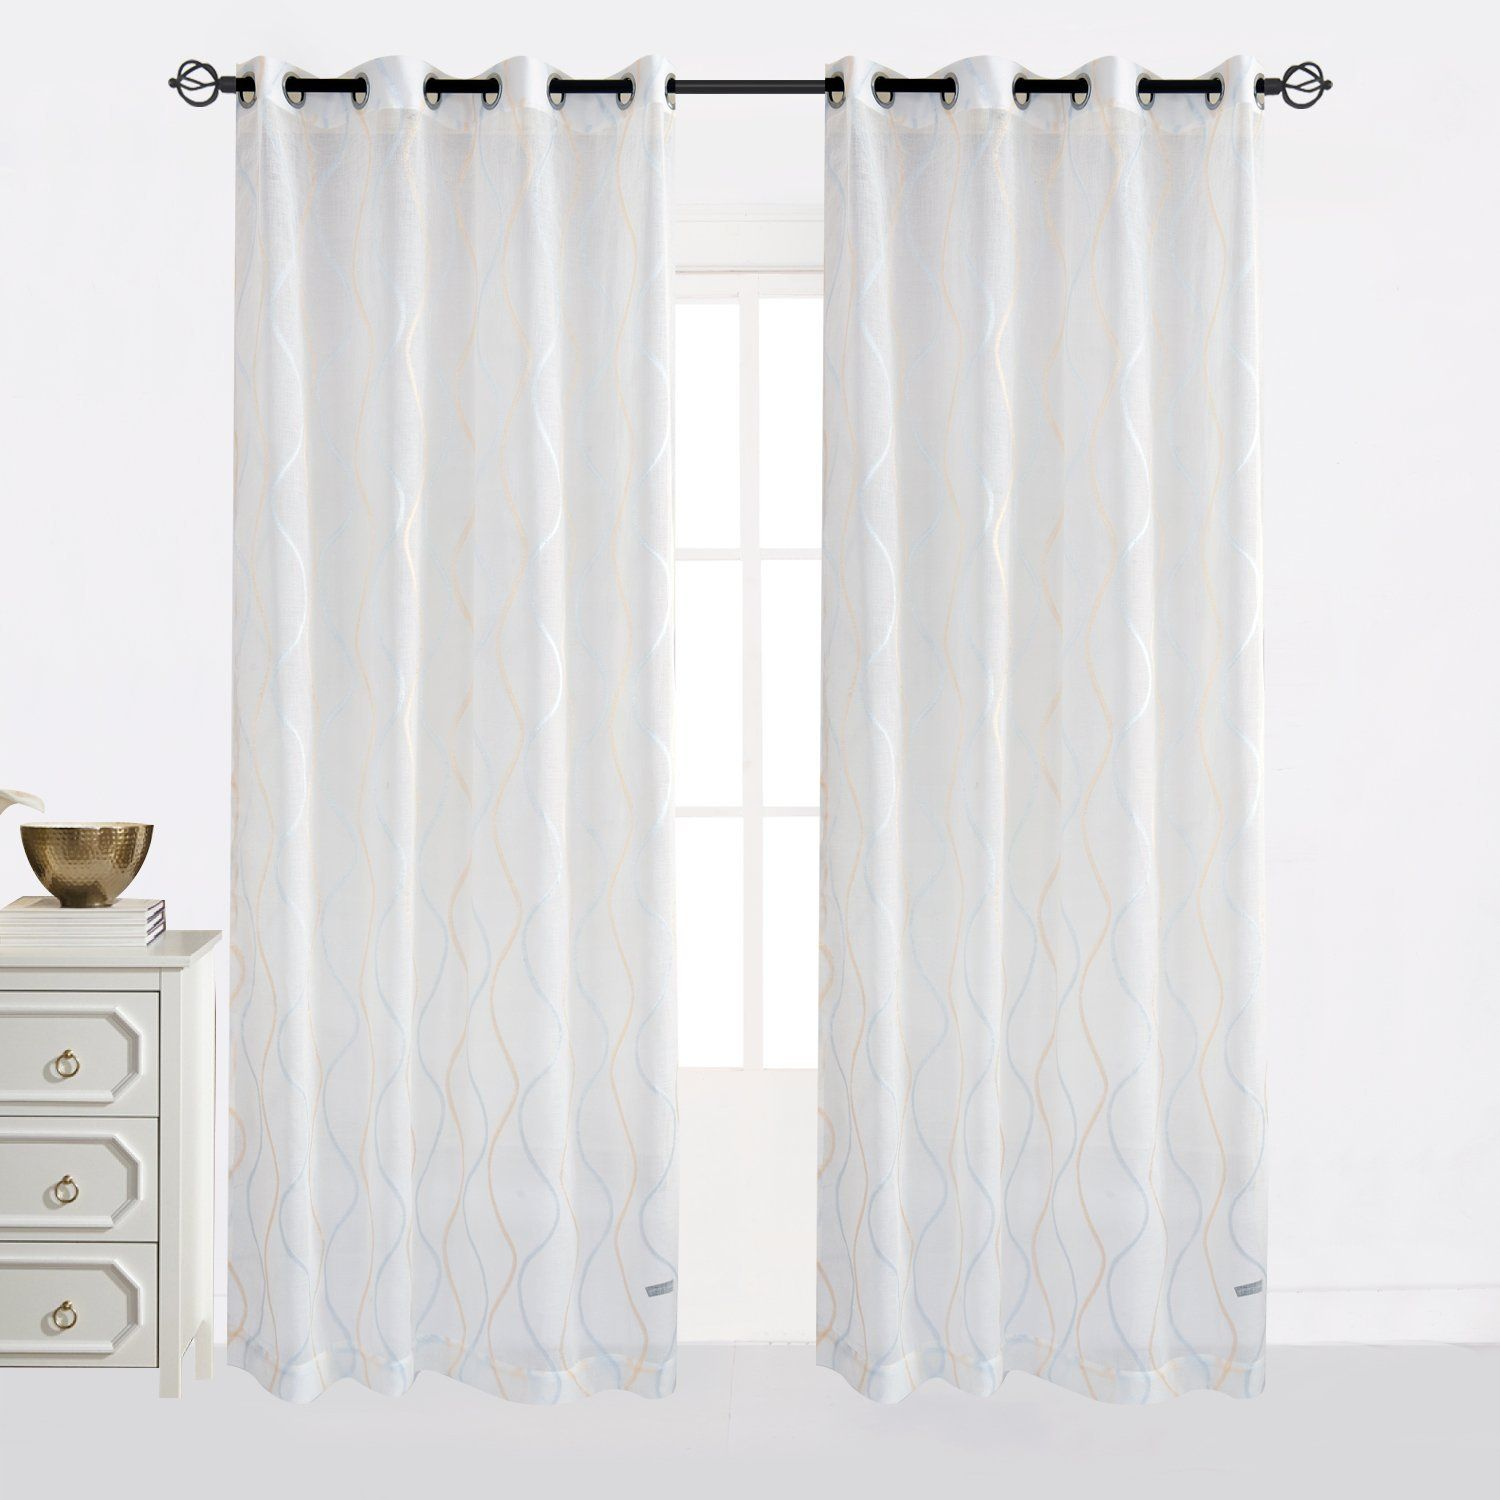 attractive 52 Inch Length Curtains Part - 12: Cheery Home Wave Sheer Curtains Voile Panels Drapes Top Grommet for Living  Room,Width 52 Inch By 84 Inch Length,Blue and Gold u003eu003eu003e Click image for more  ...